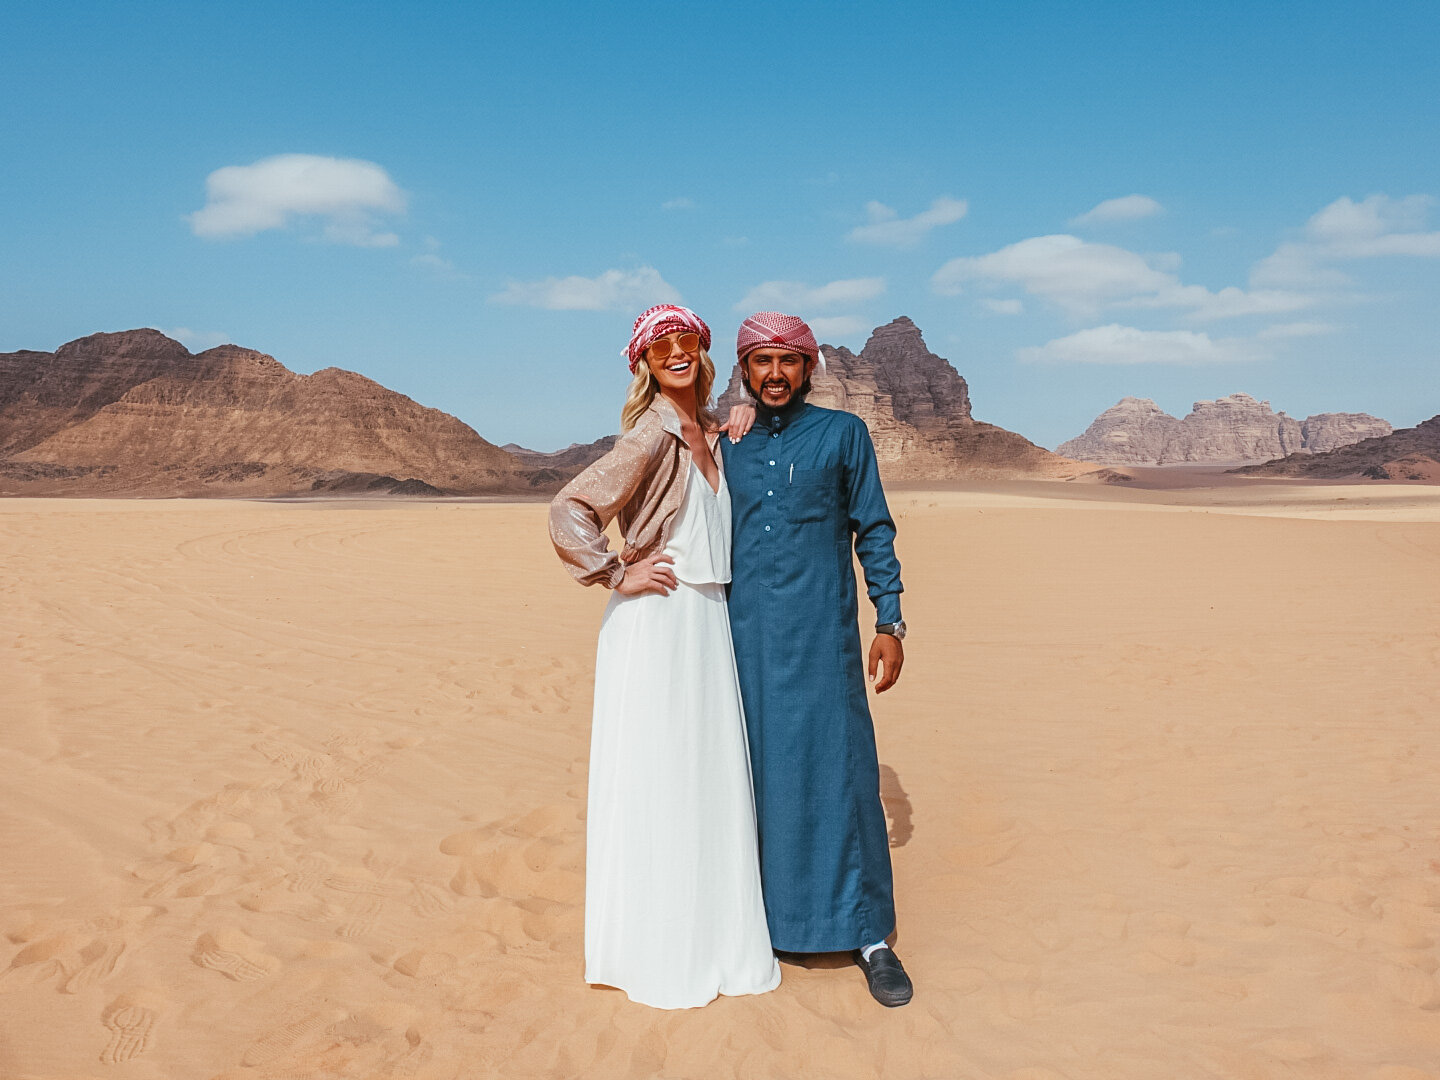 The best guide in Wadi Rum.